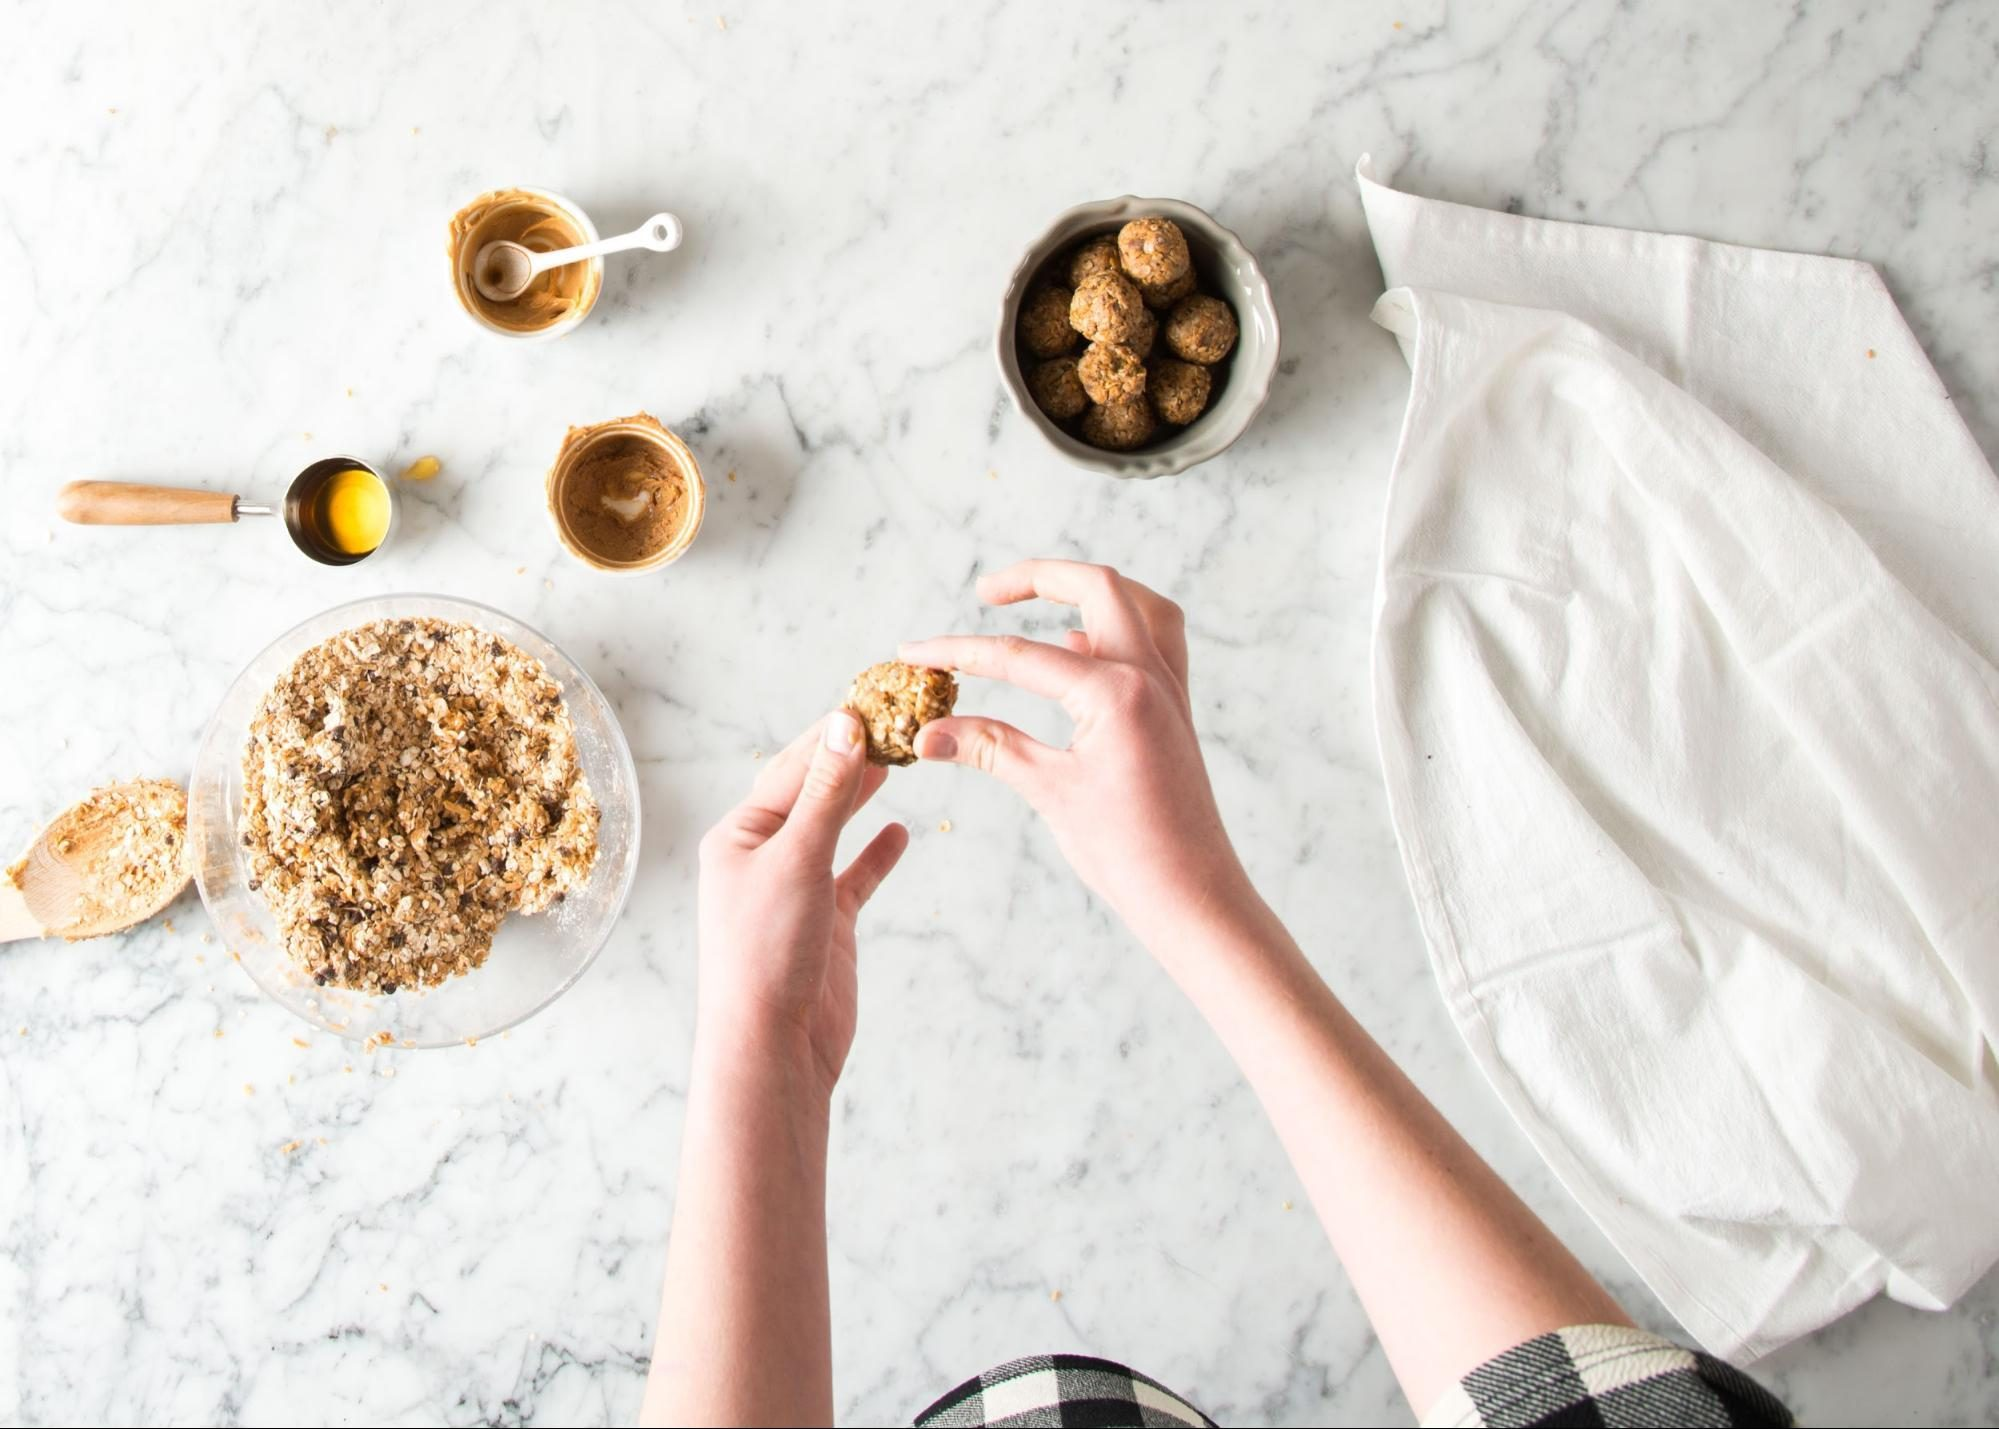 plant-based snacks | Making a healthy snack